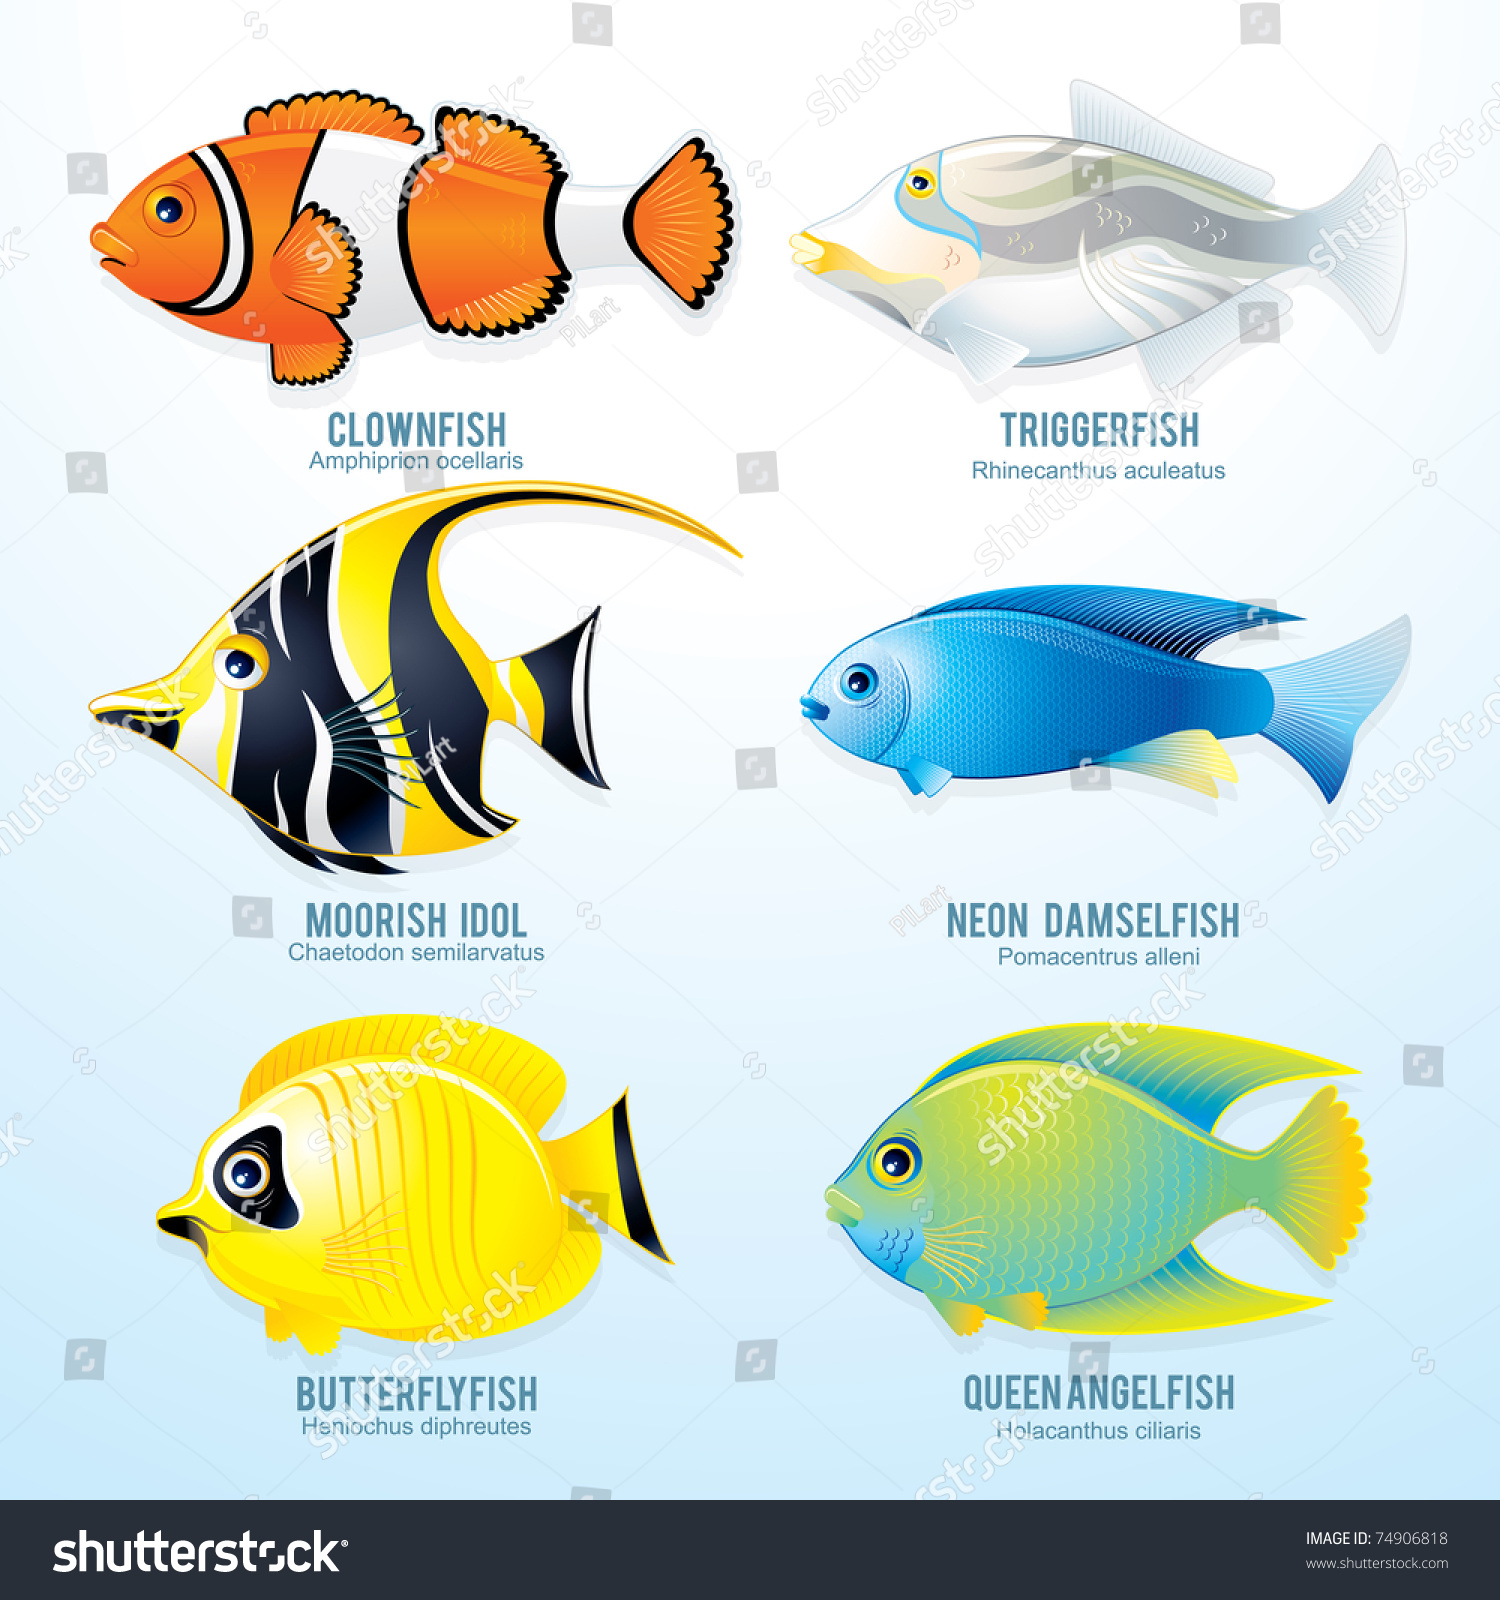 Tropical reef fish collection detailed vector stock vector for Reef tropical fish